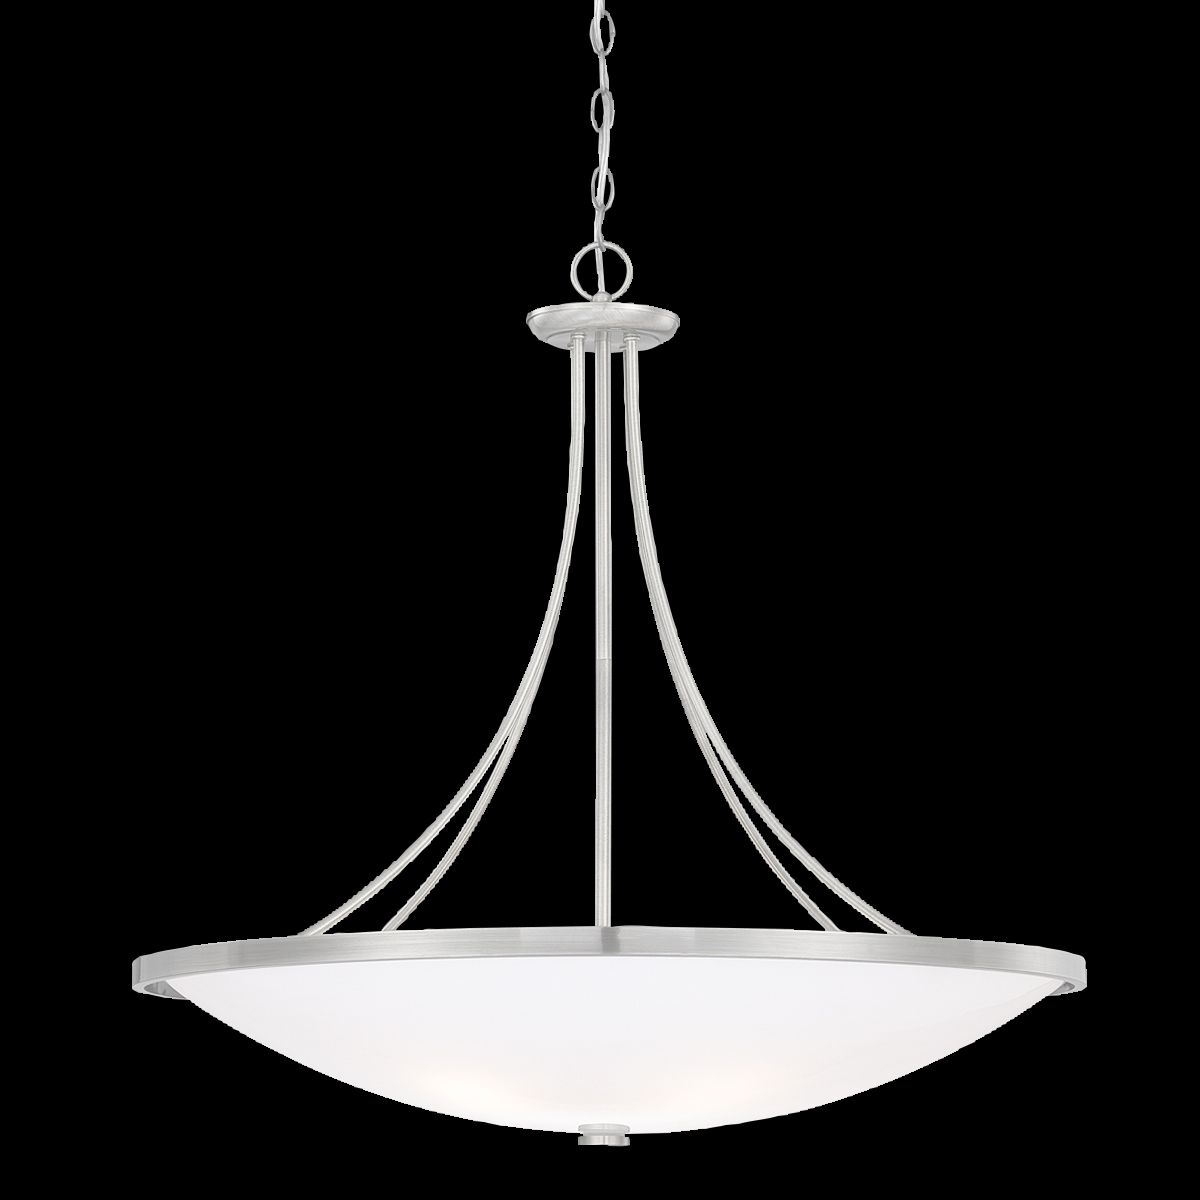 A 8-light pendant from the Blanko collection